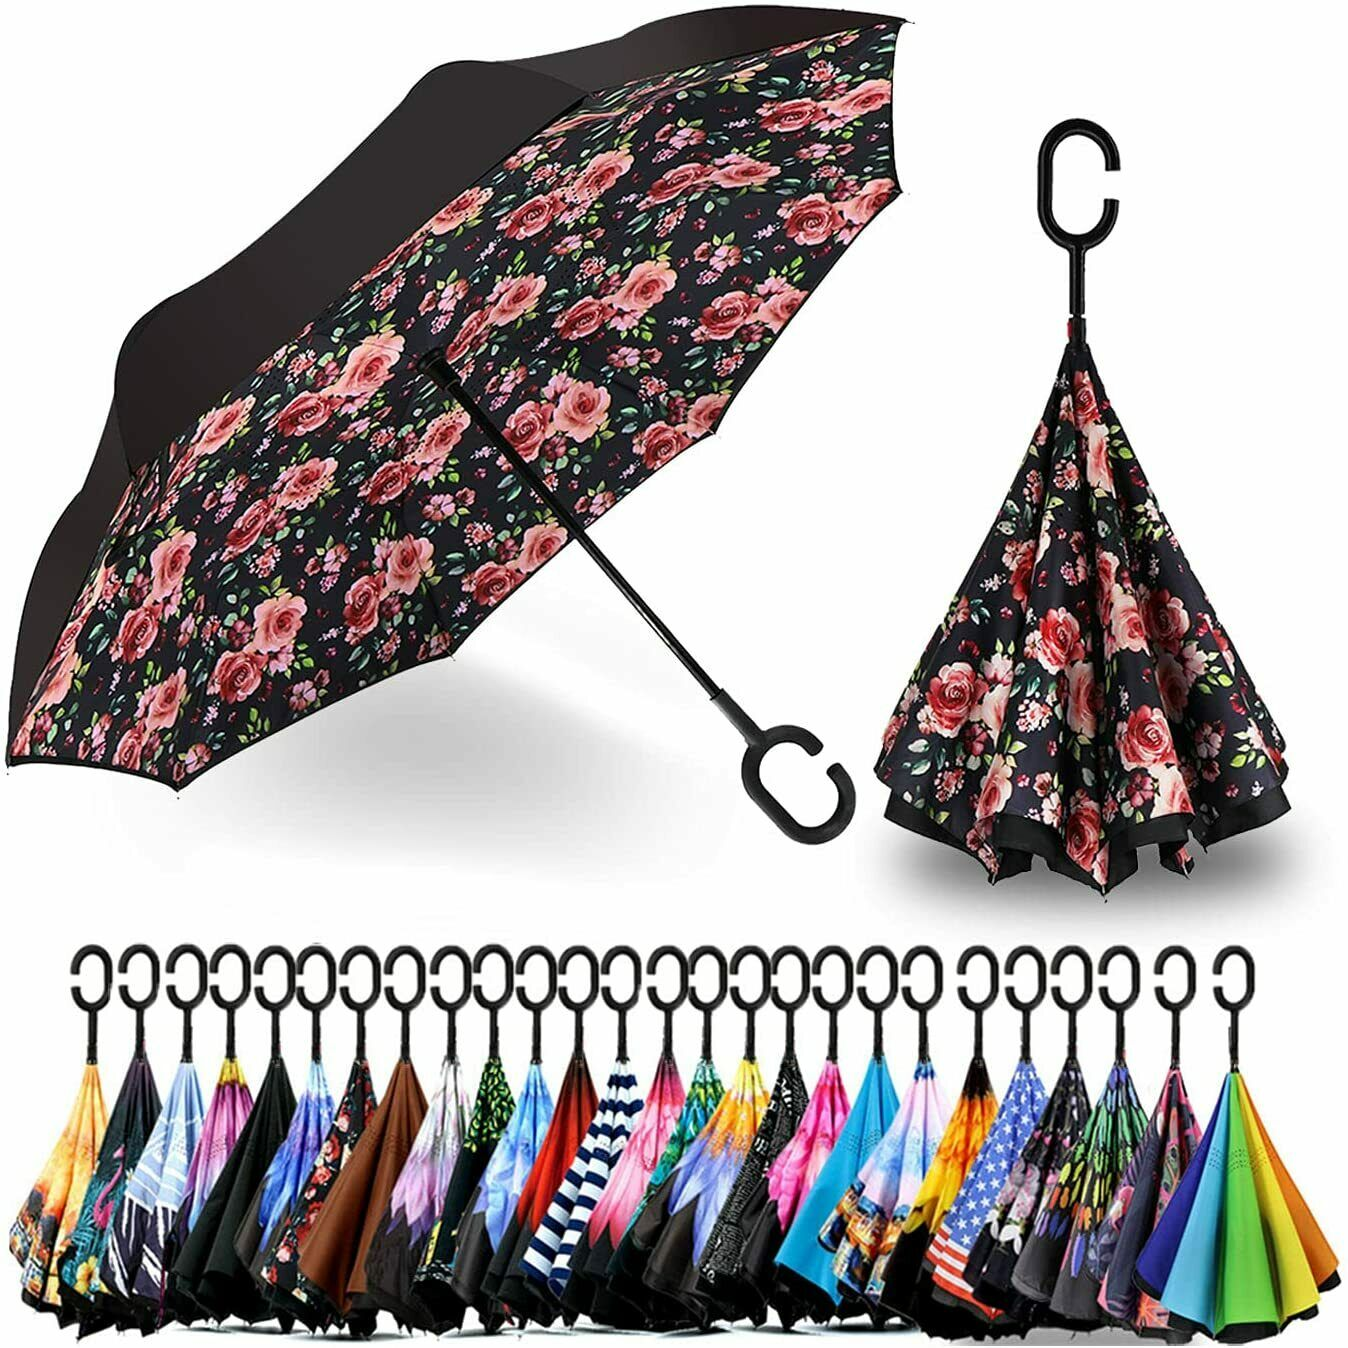 Double Layer Inverted Umbrella with C Shaped Handle Anti UV Waterproof Windproof